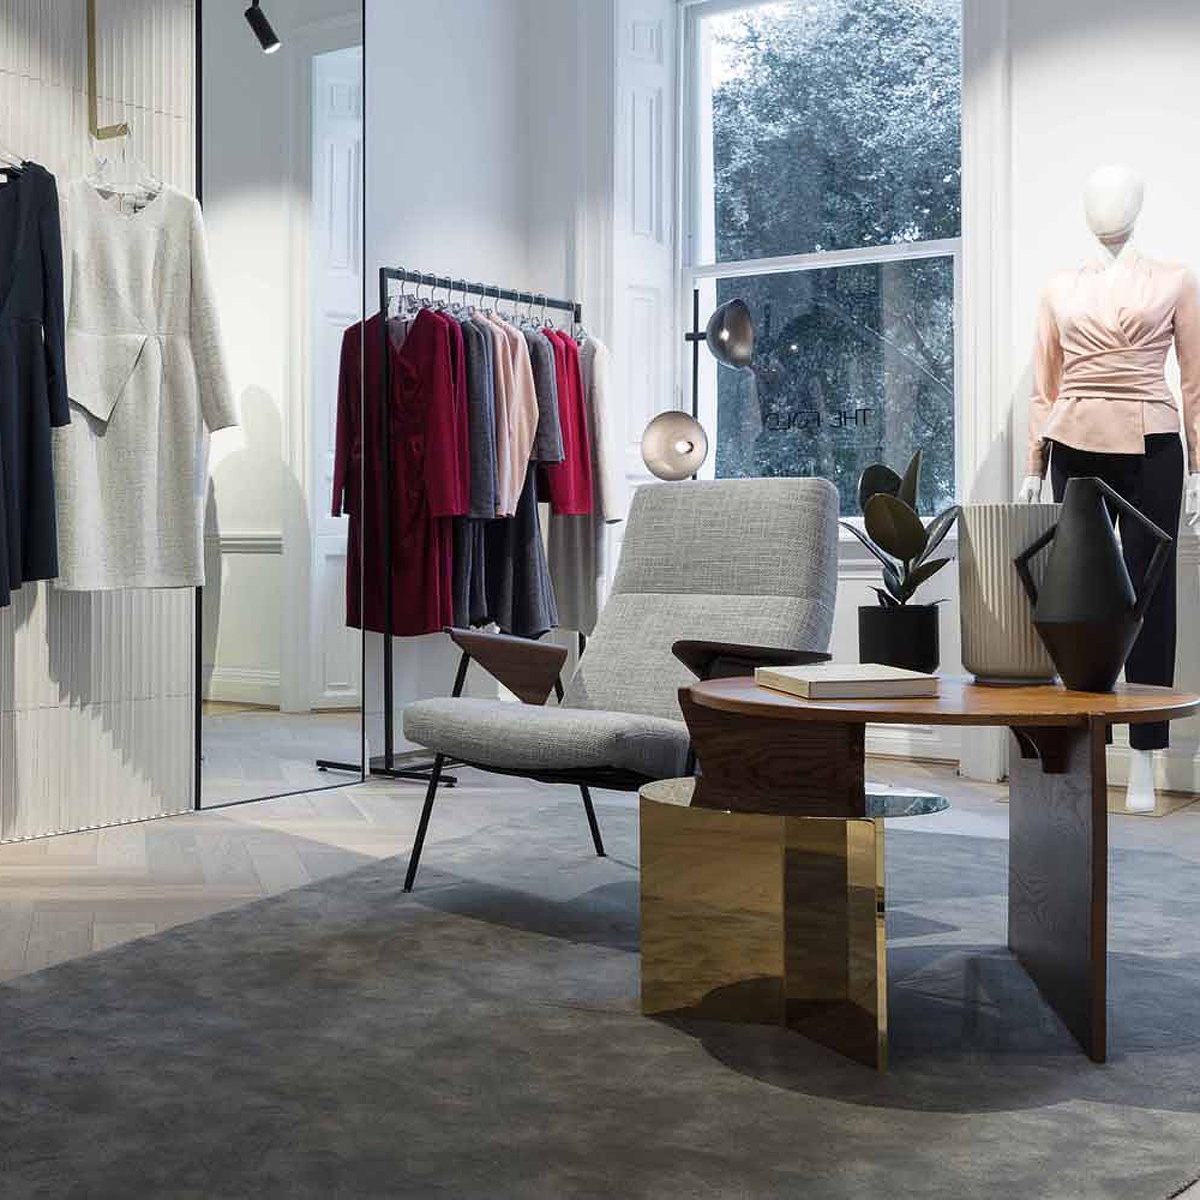 Kinnersley Kent Design Completes Fold's Flagship Store